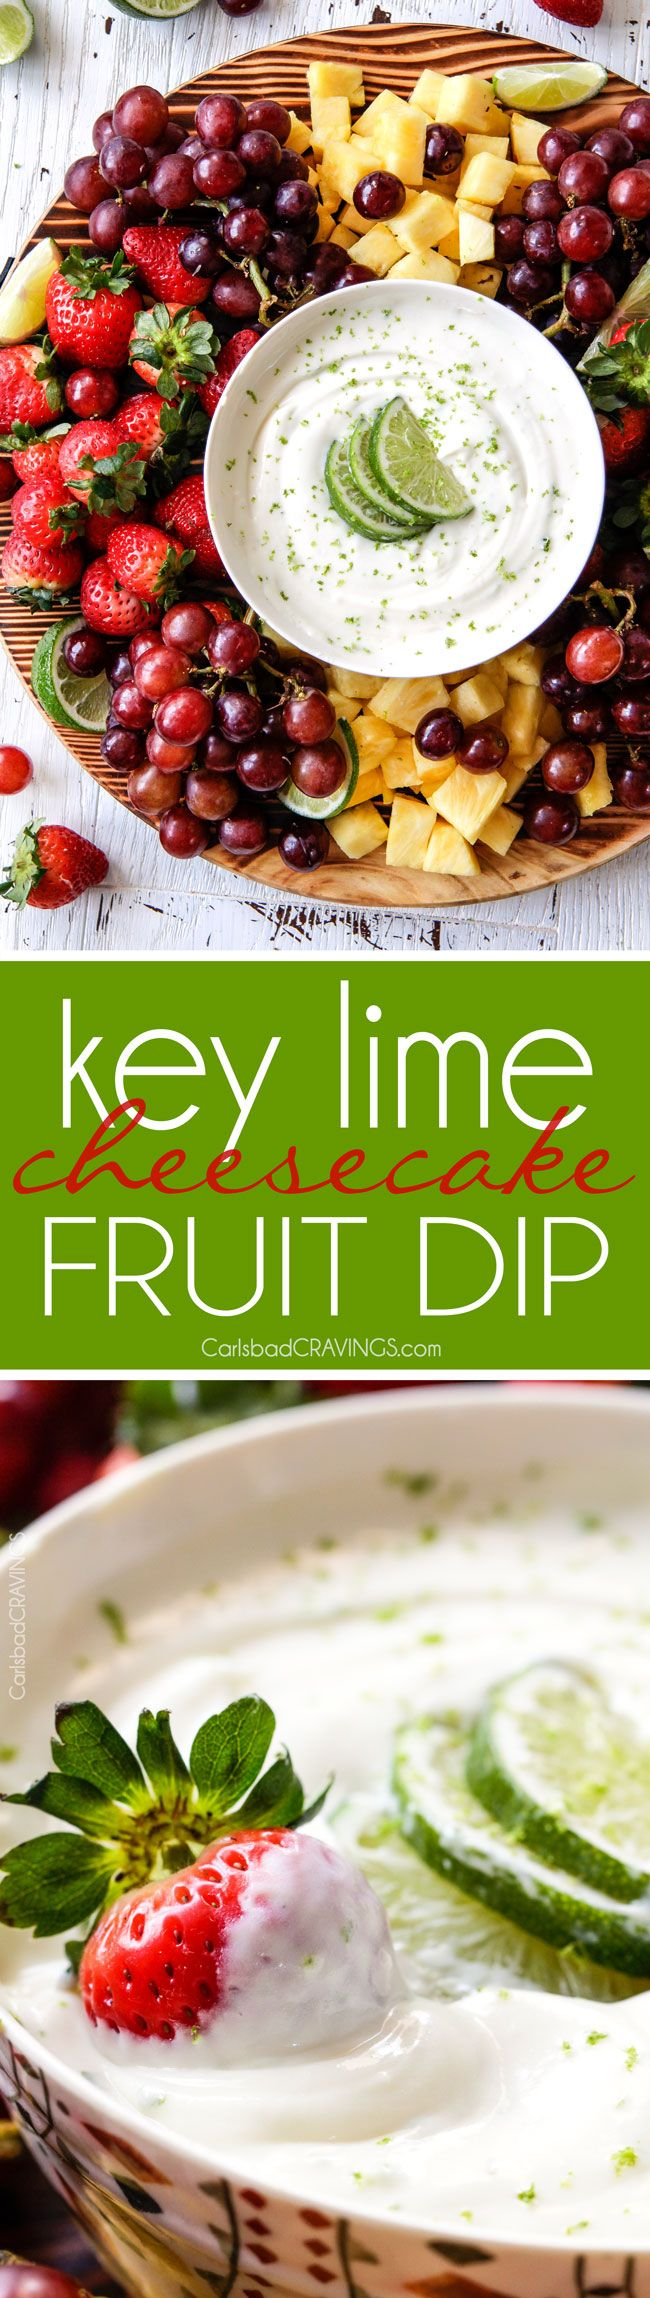 incredibly easy Key Lime Cheesecake Fruit Dip is smooth, creamy and the BEST way to eat fruit! Addictingly delicious make ahead snack or appetizer that everyone LOVES!